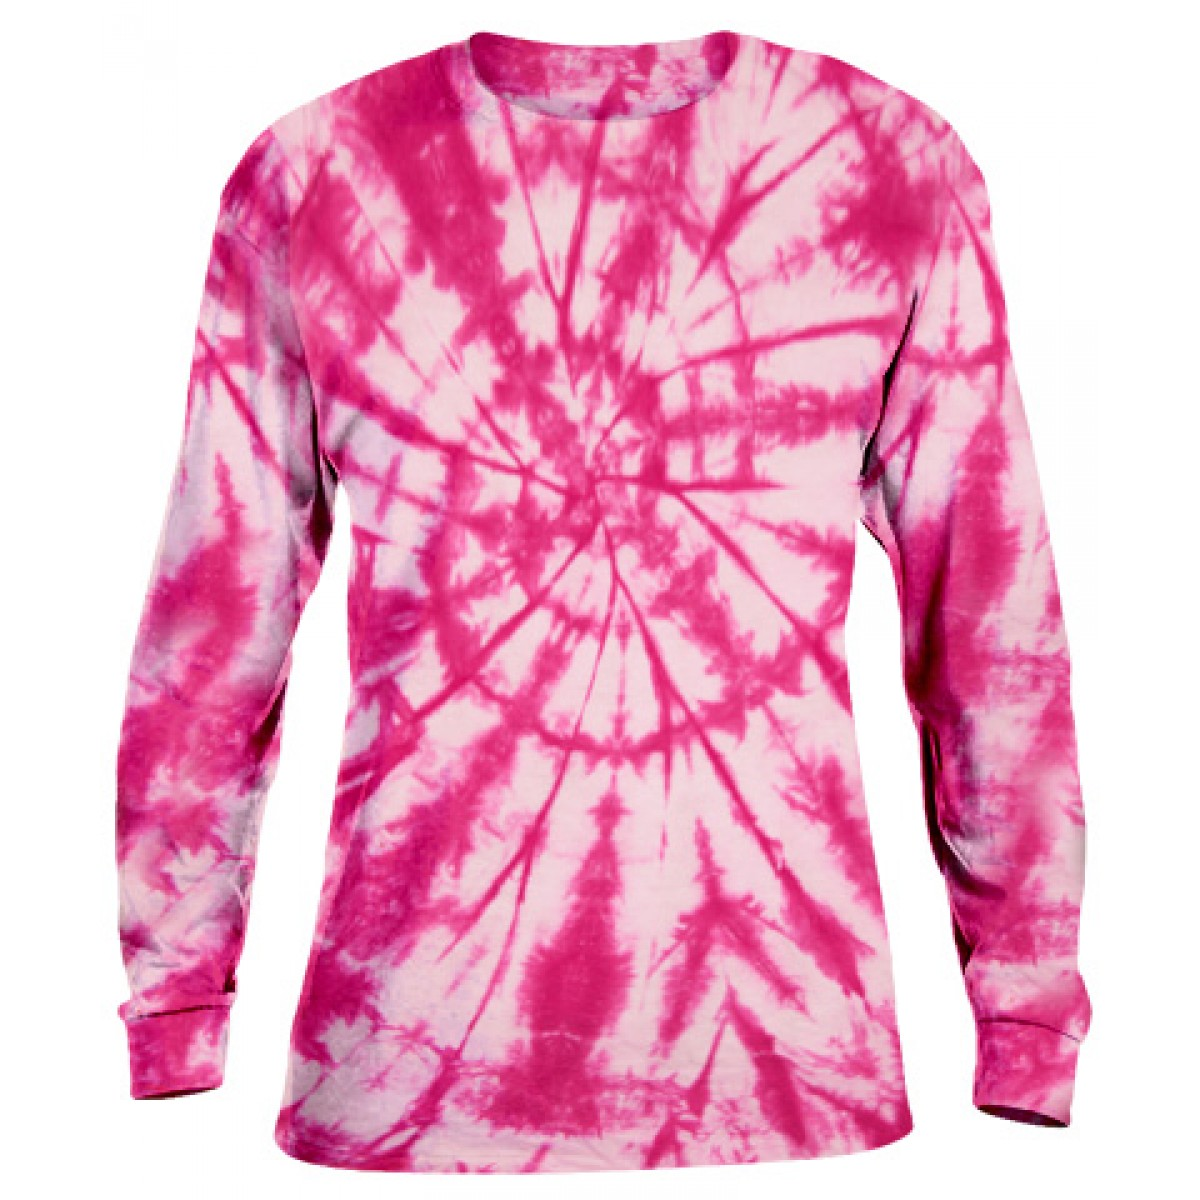 Tie-Dye Long Sleeve Shirt -Fuscia-YM